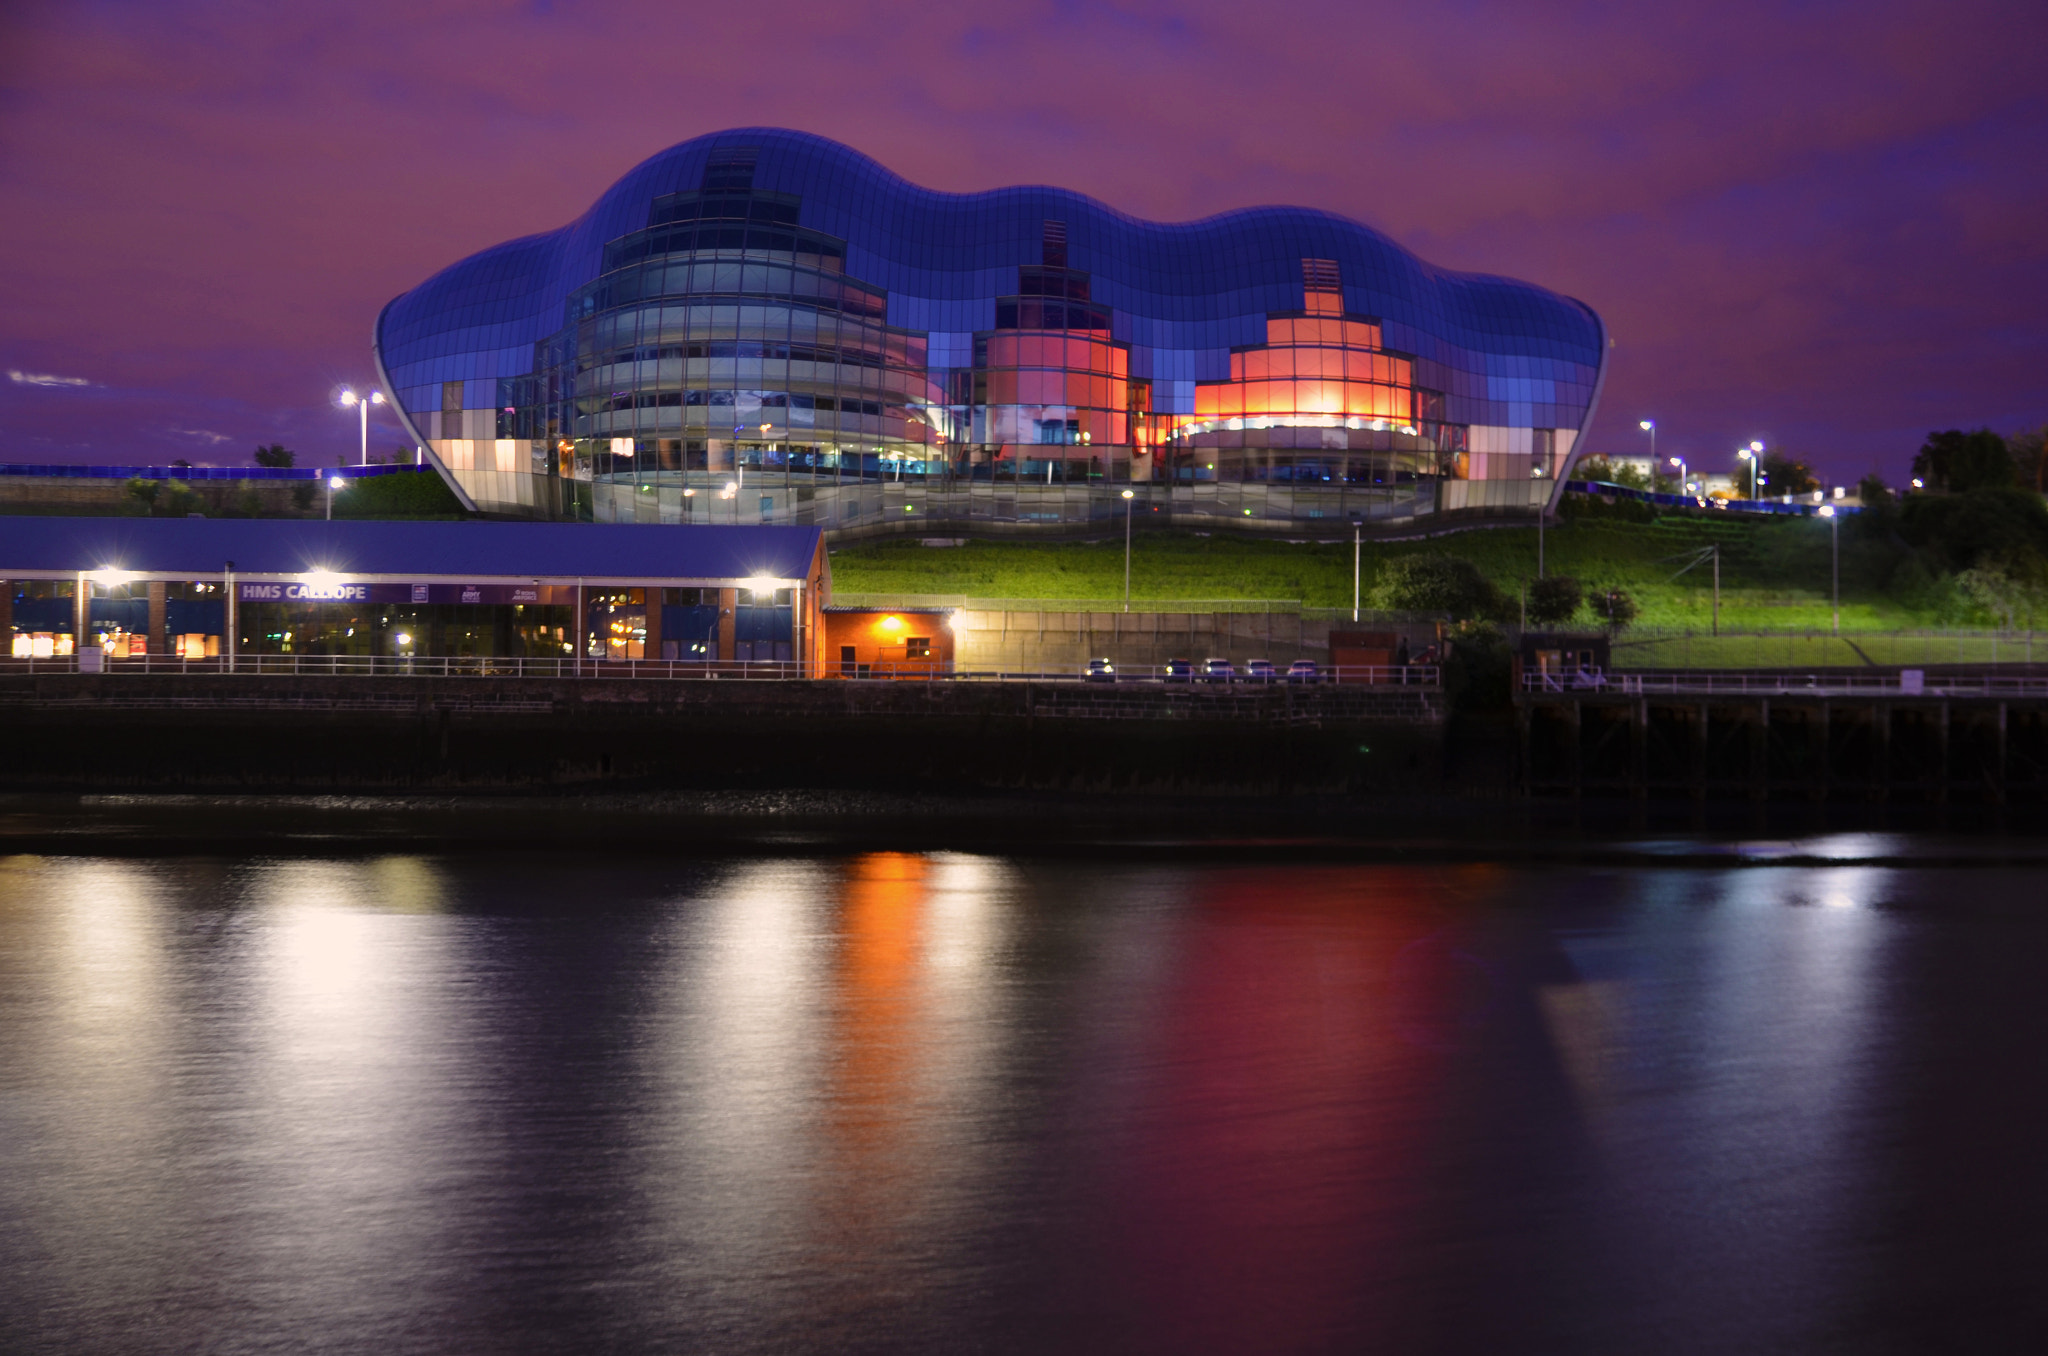 Photograph The Sage, Gateshead by MalekPhotography on 500px